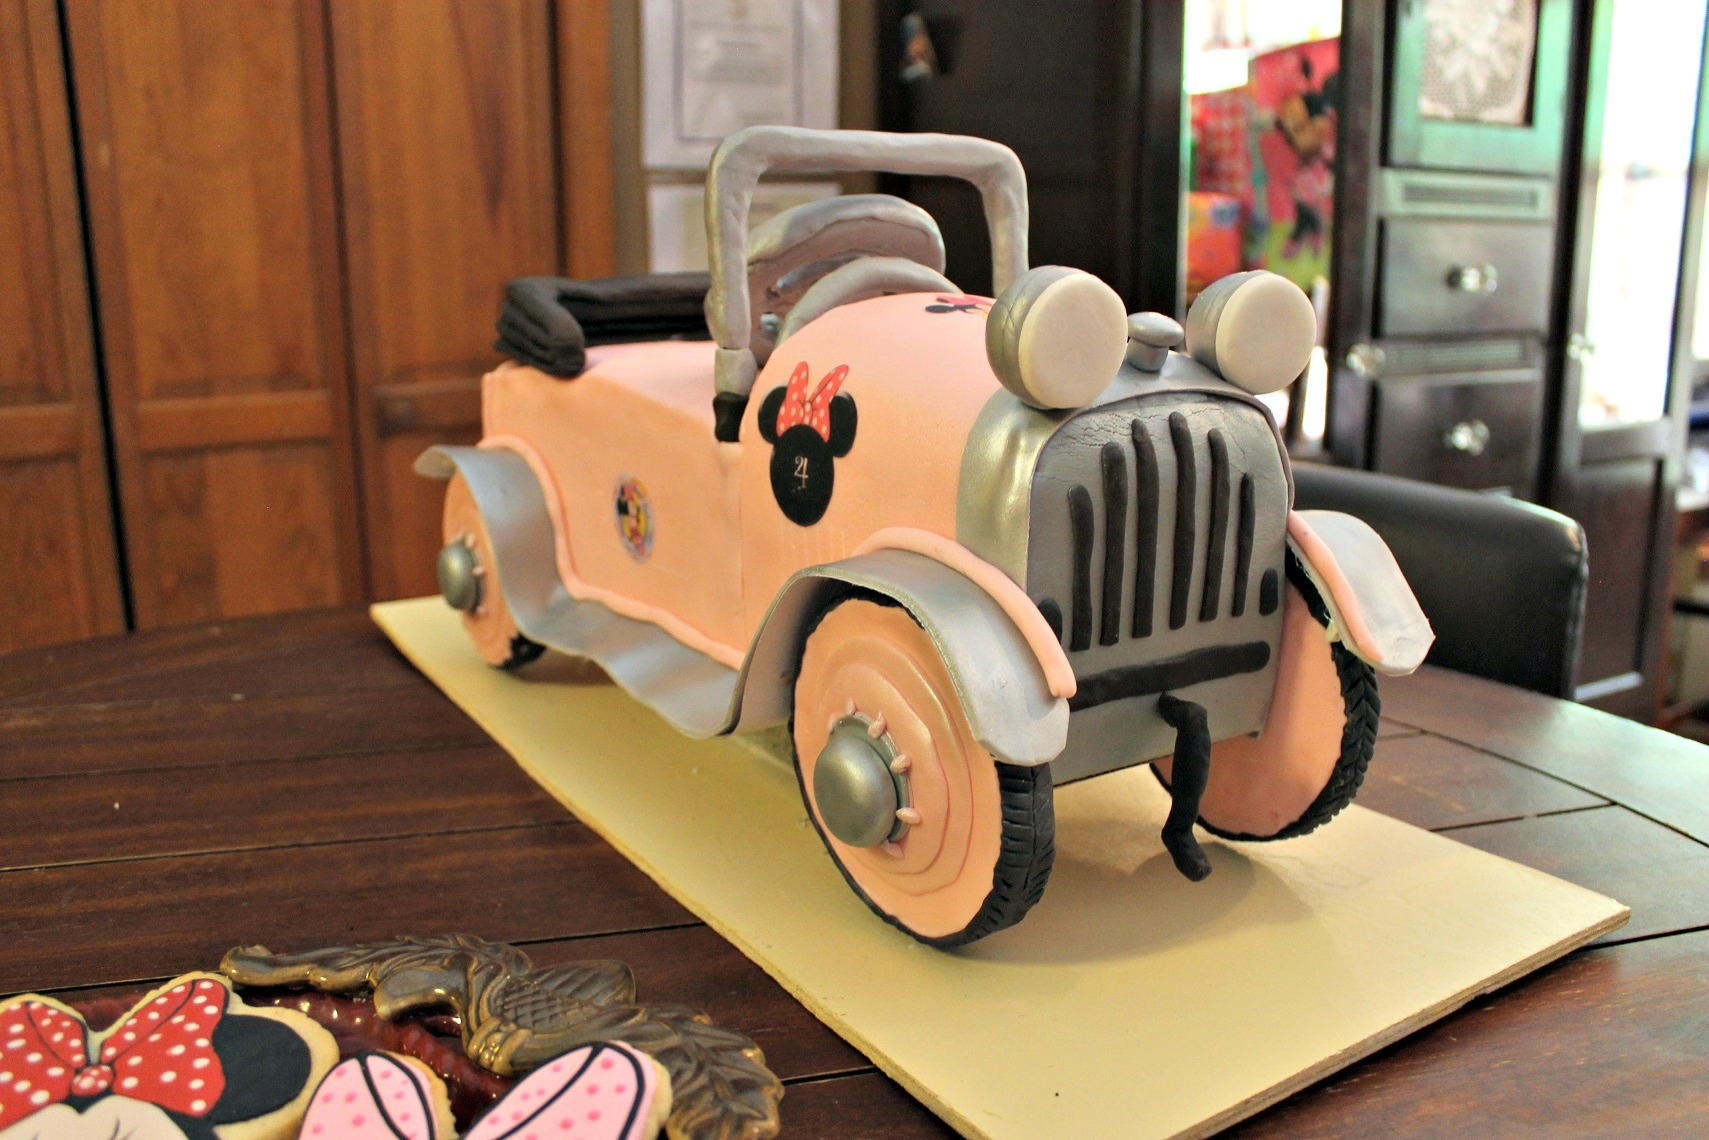 Minnie Mouse Pedal Car Birthday Cake Minnie Mouse pedal car birthday cake